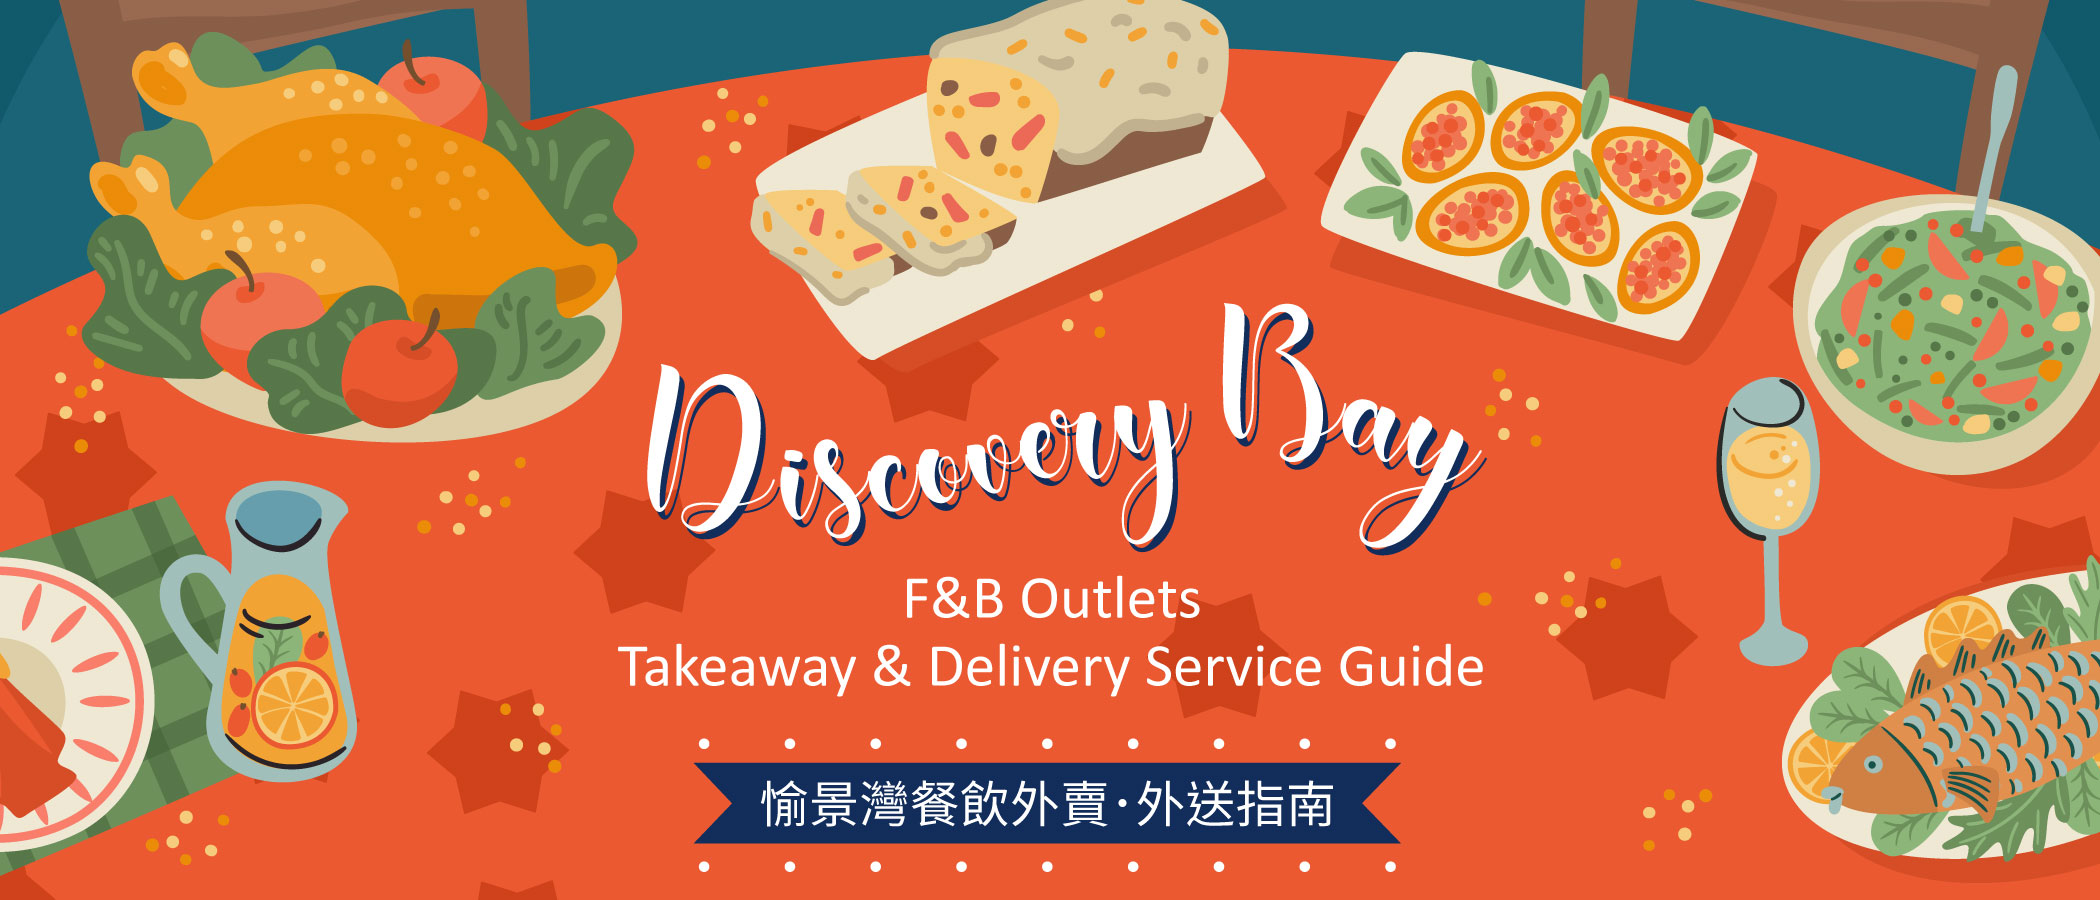 Discovery Bay F&B Outlets Takeaway & Delivery Service Guide